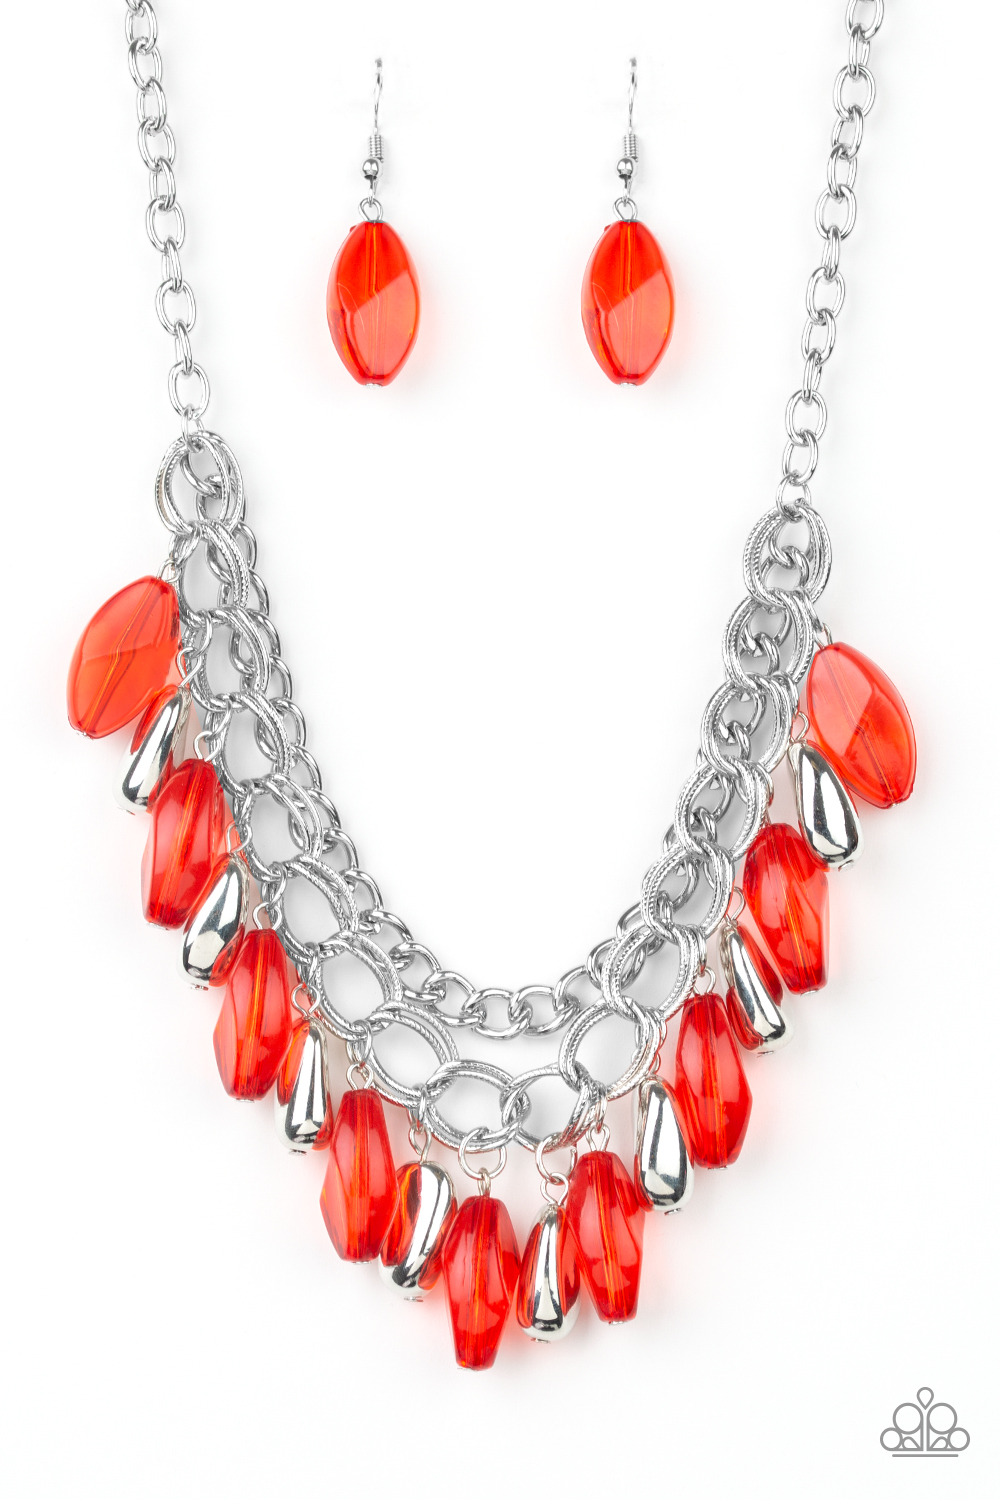 Spring Daydream - Red Necklace $5.00 www.my-bling.com